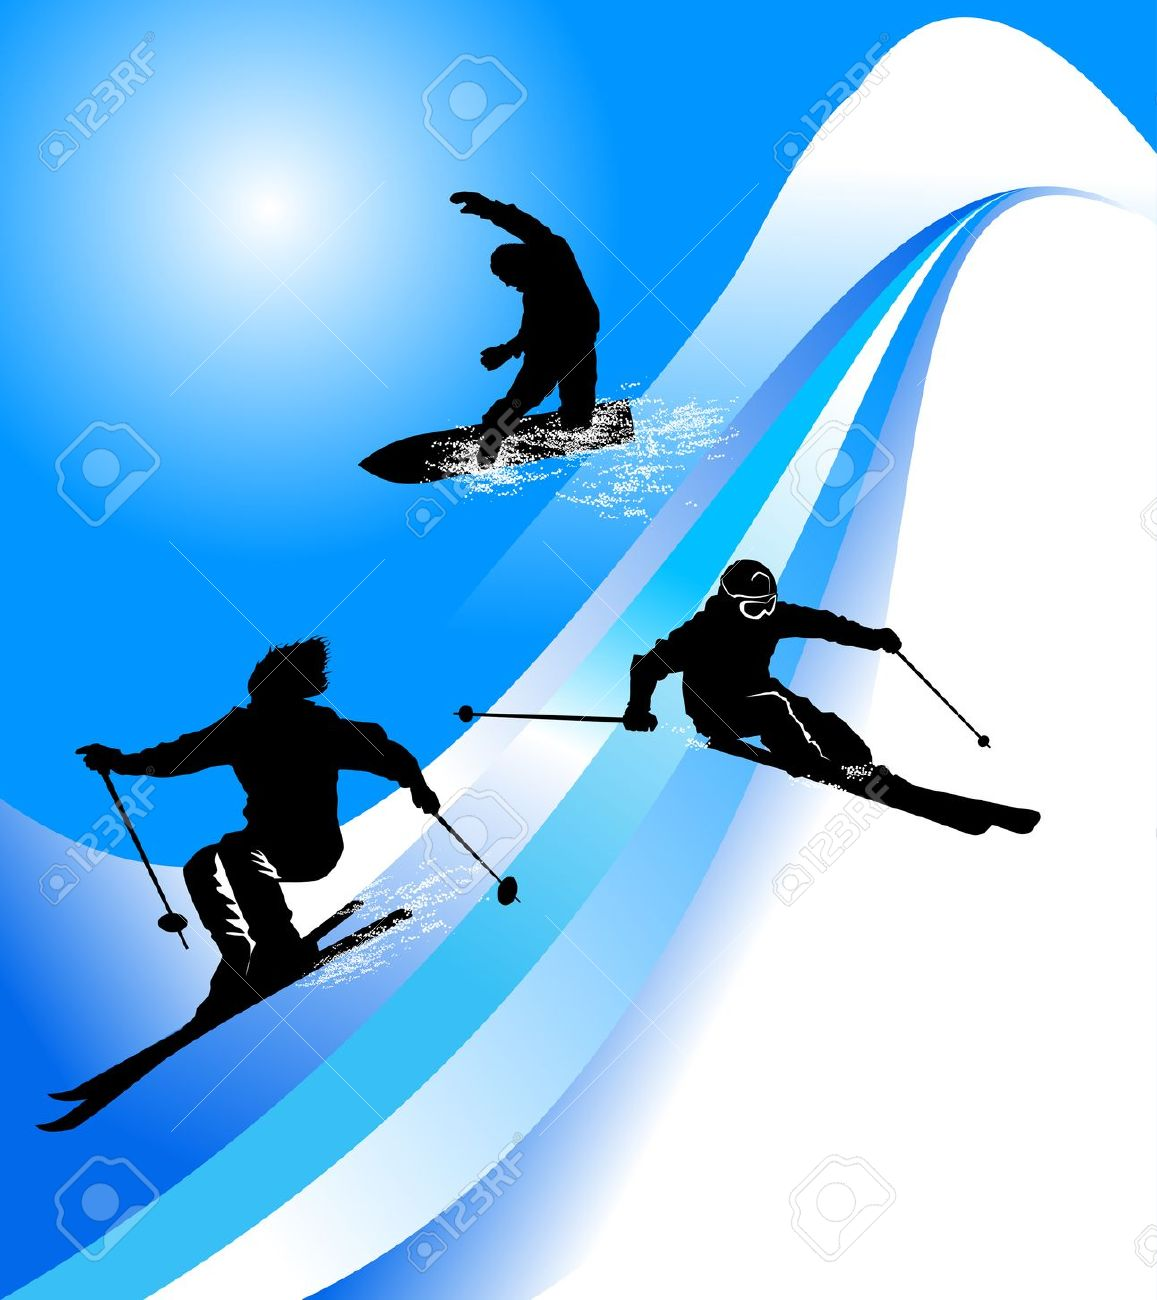 Free Ski Slope Cliparts, Download Free Clip Art, Free Clip.